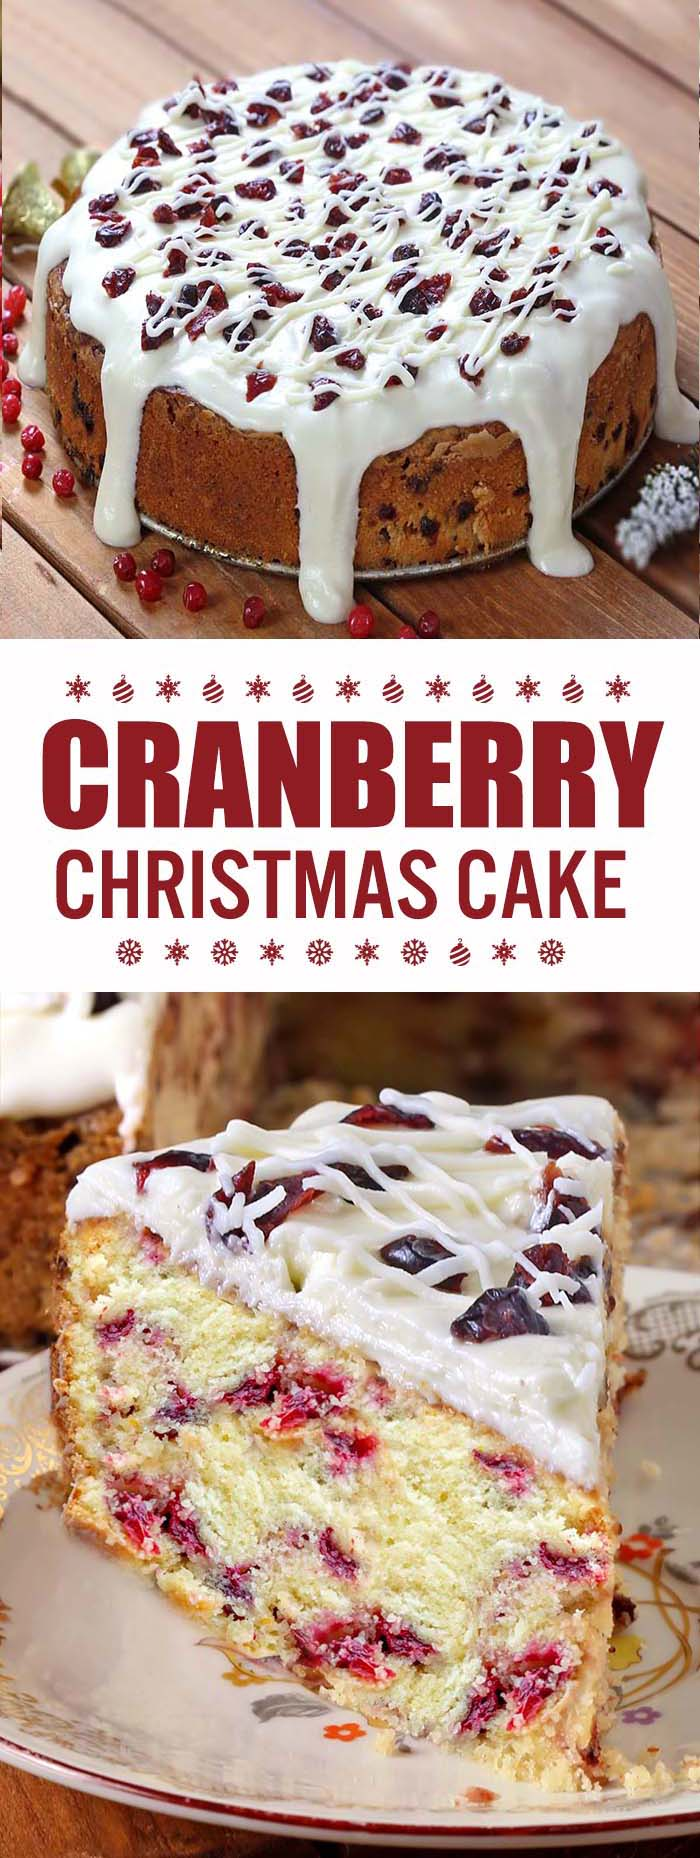 This is the perfect Cranberry Christmas Cake! All of the holiday flavors you love in the Starbucks' Cranberry Bliss Bars in the cake form.